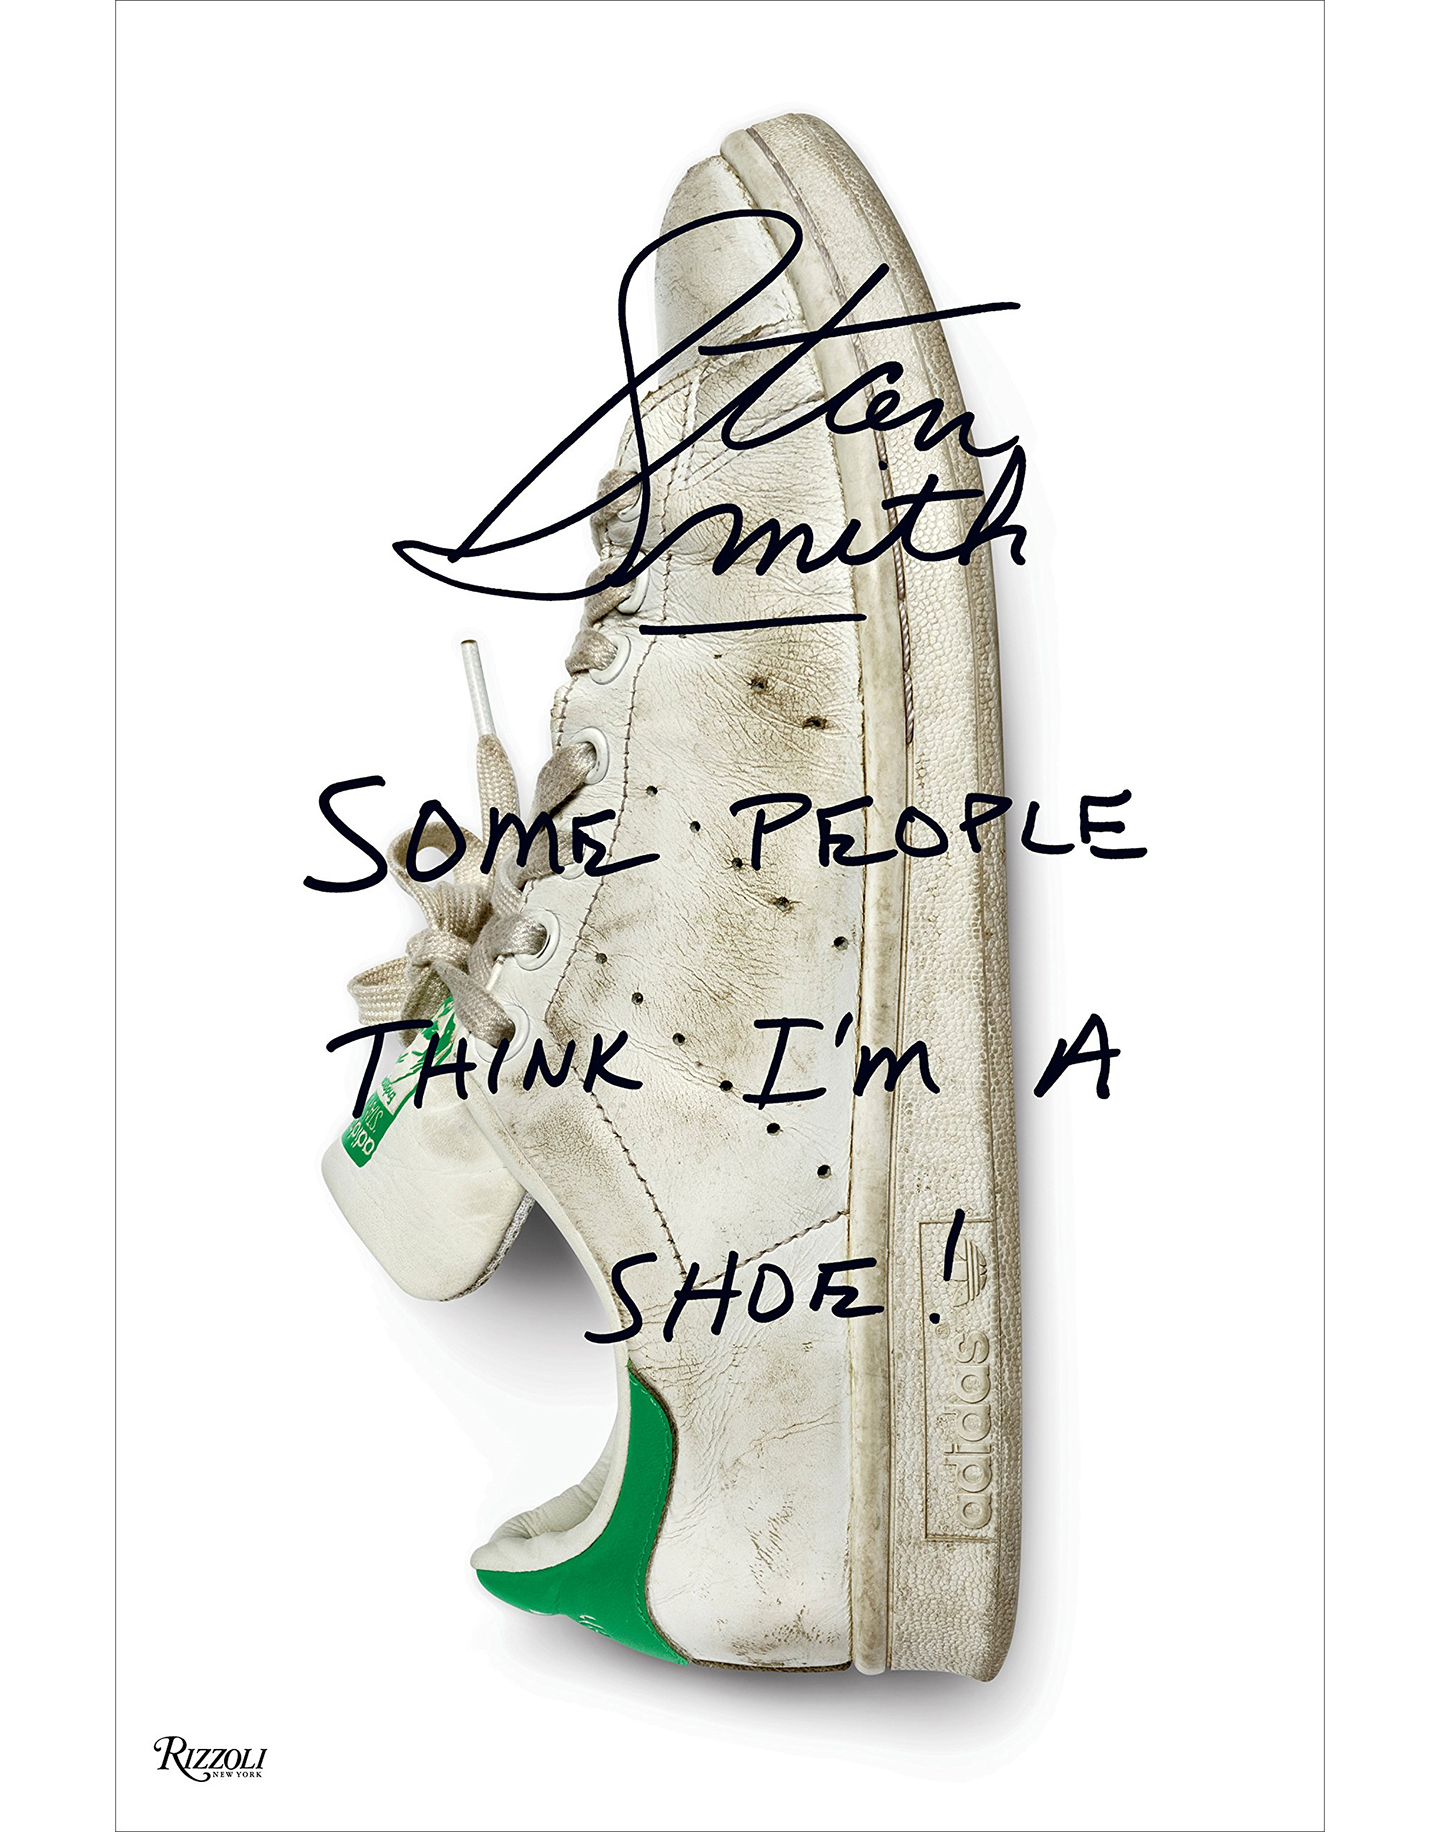 STAN SMITH ADIDAS BOOK COVER DAVID FILIBERTI